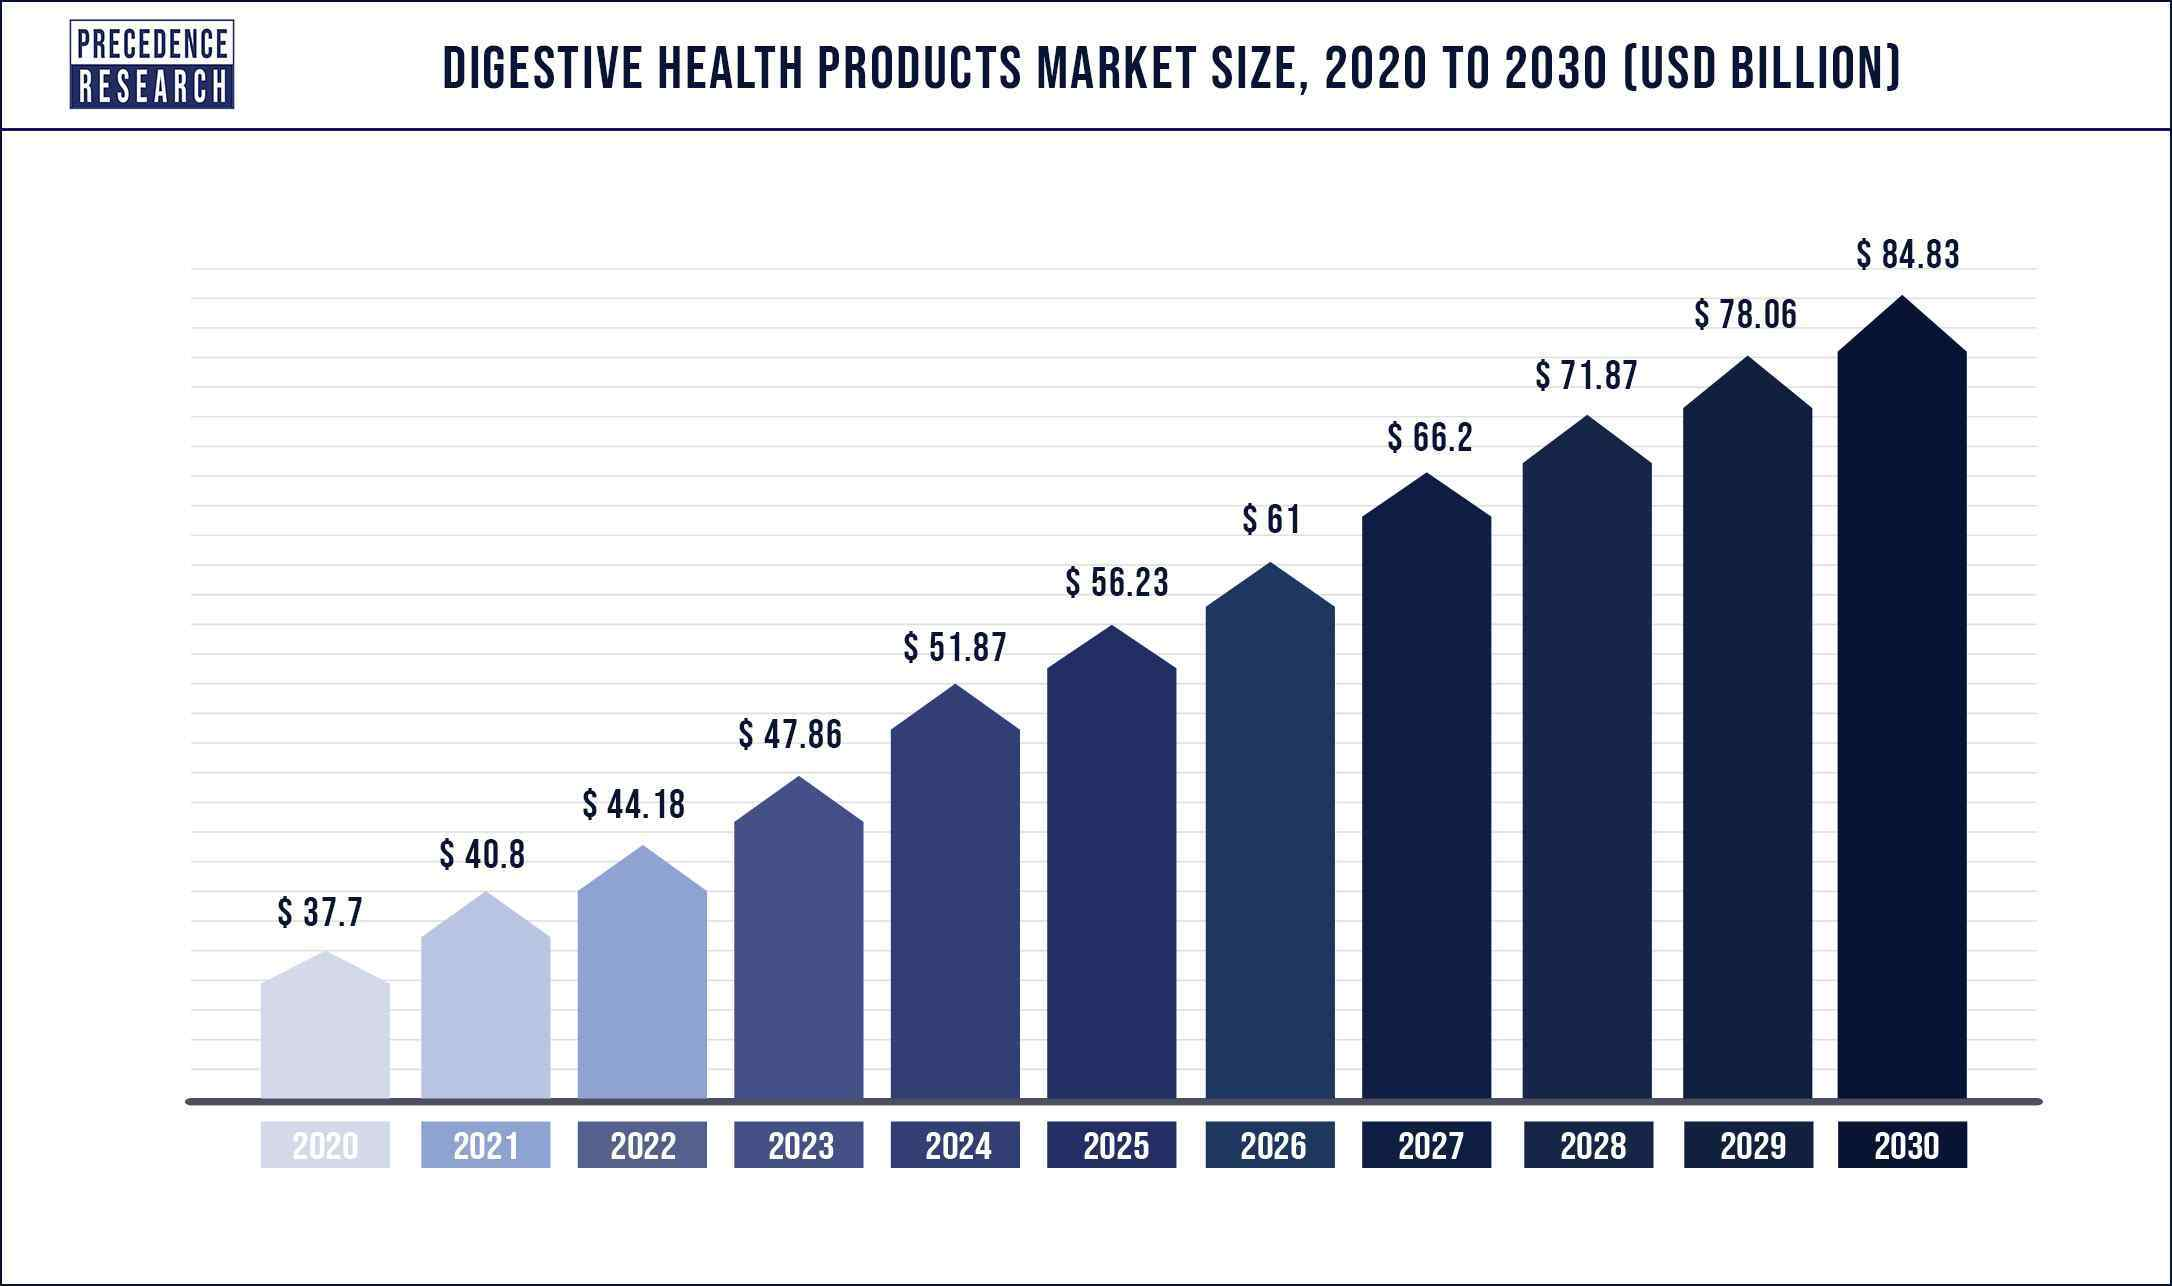 Digestive Health Products Market Size 2020 to 2030